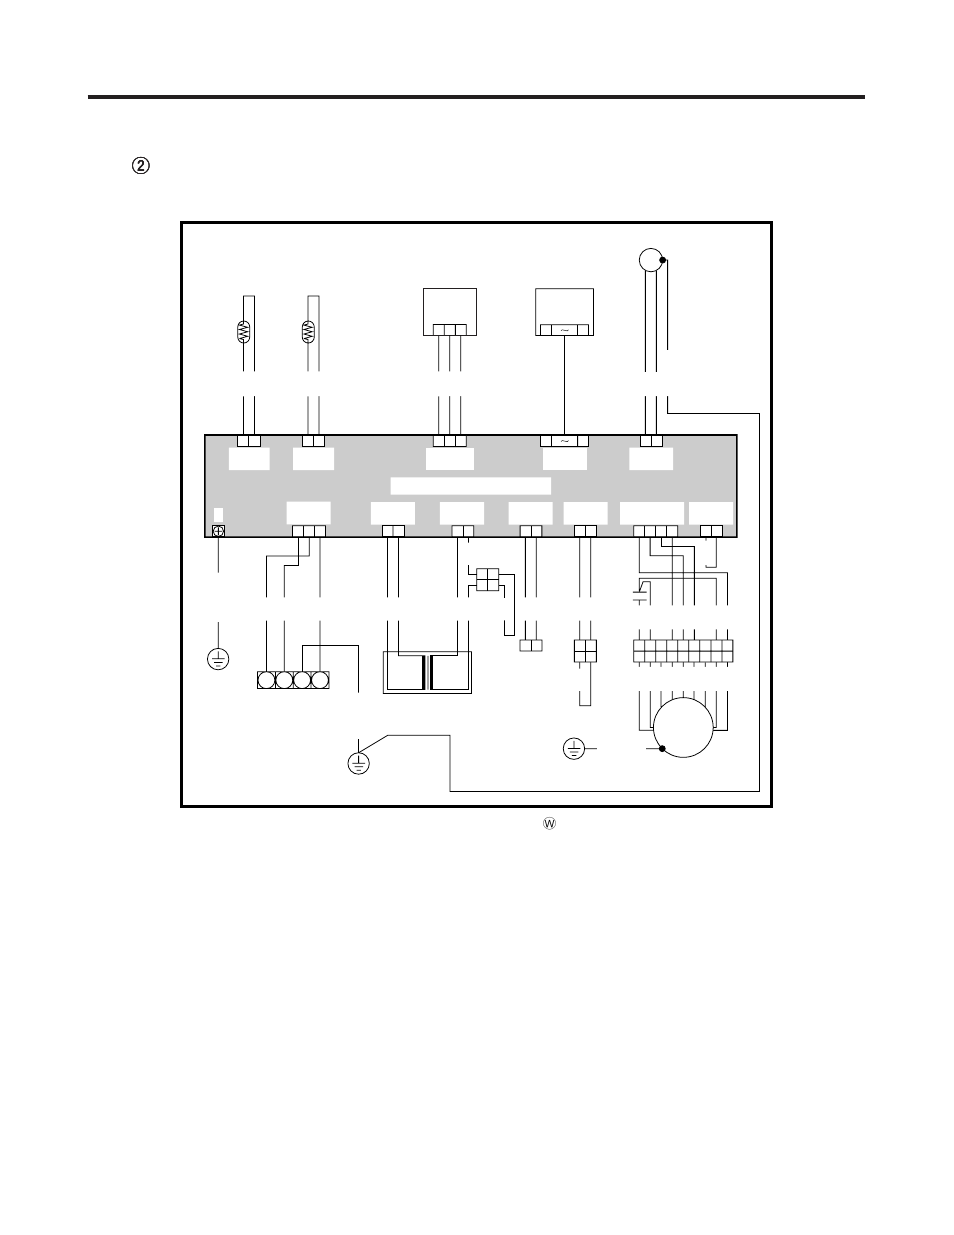 Electric wiring diagram, Electrical wiring diagrams